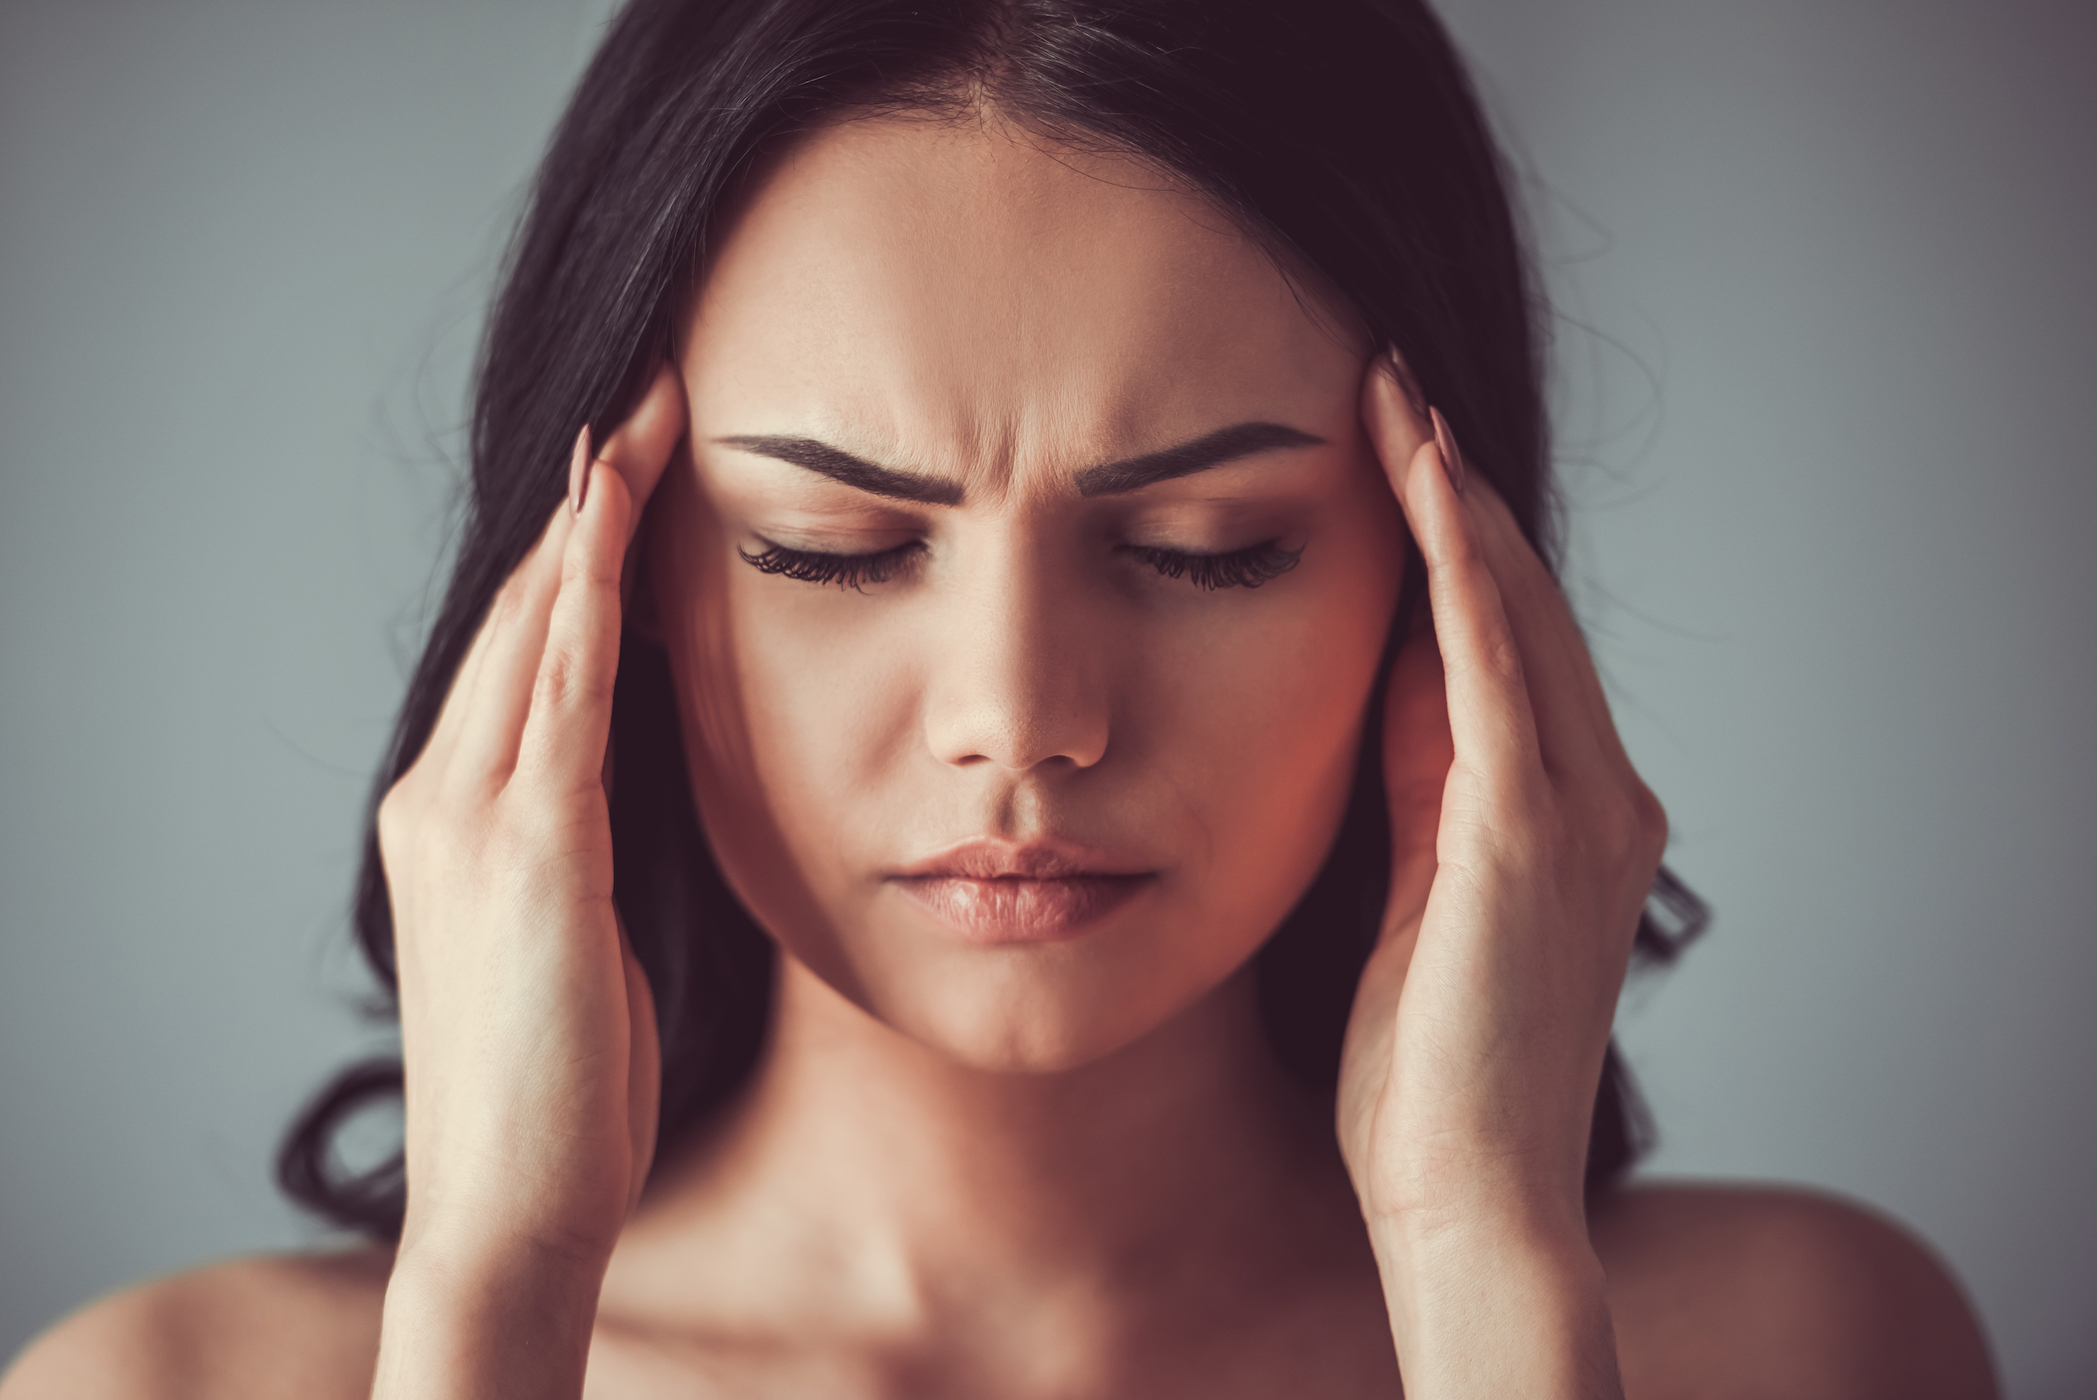 A new study reports that a common genetic variant responsible for migraines may have proliferated because it helped early humans adapt to cold weather.